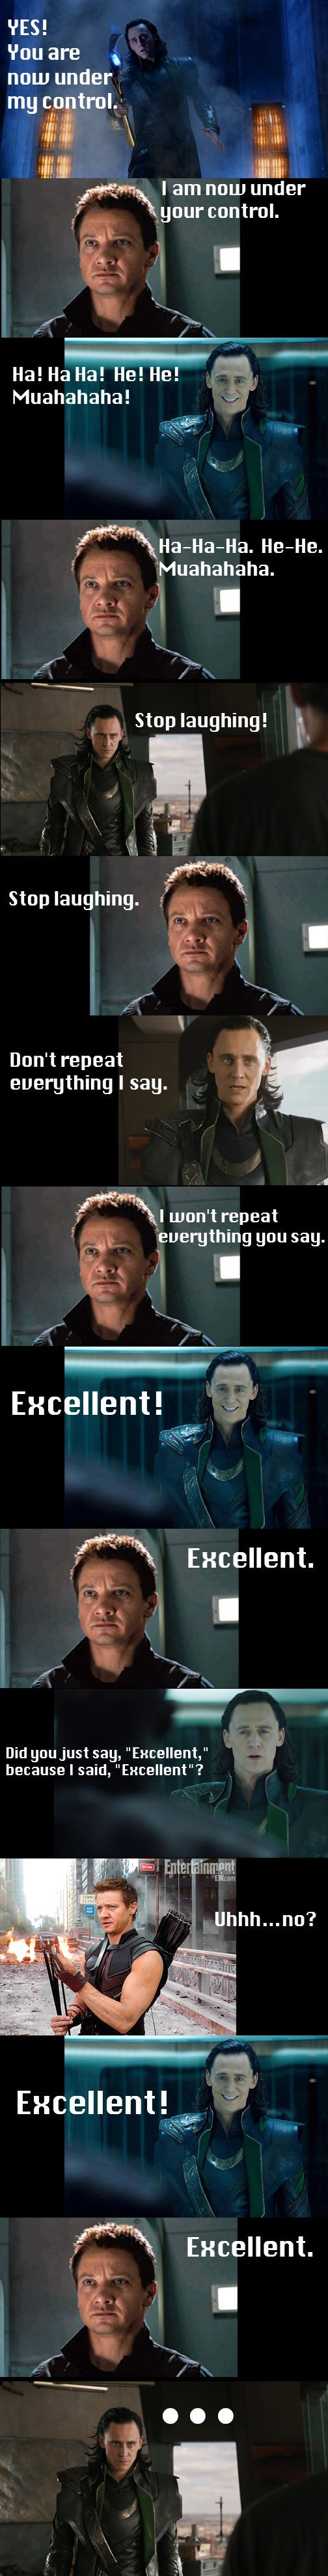 Meet the Robinsons dialogue in the Avengers. OH MY WORD, I love everything about this!!!